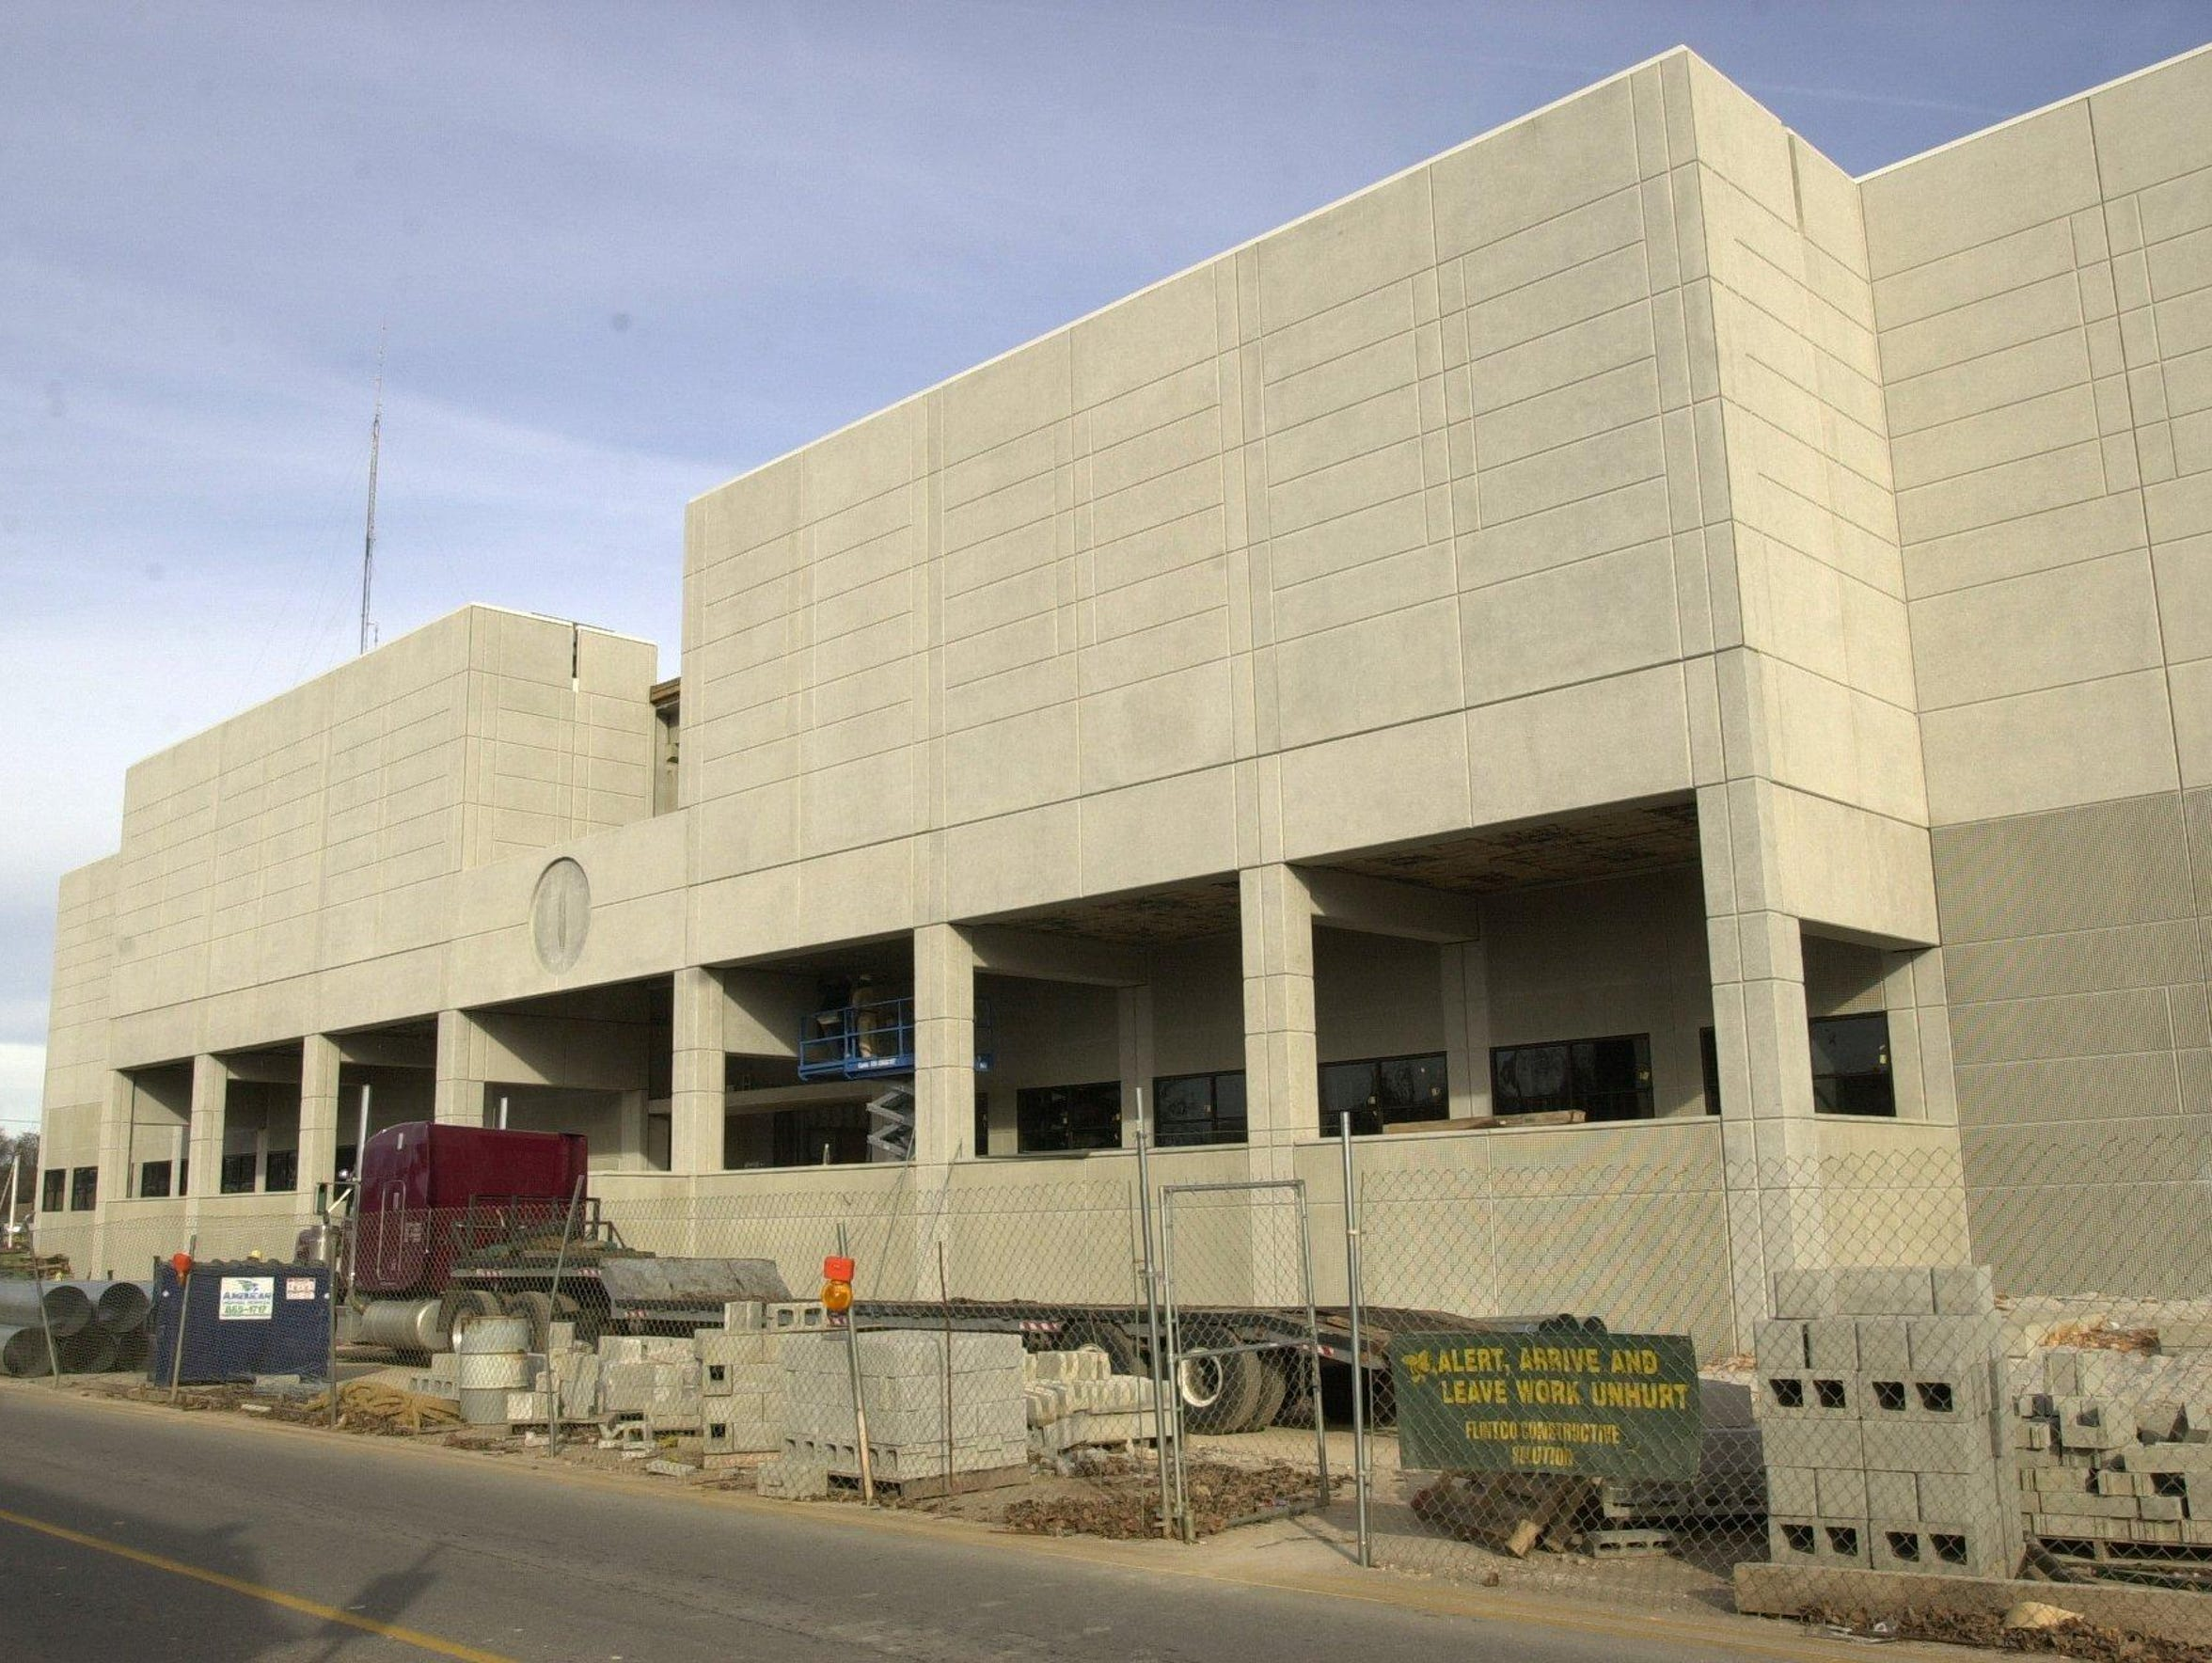 The current jail is under construction in 2000. It